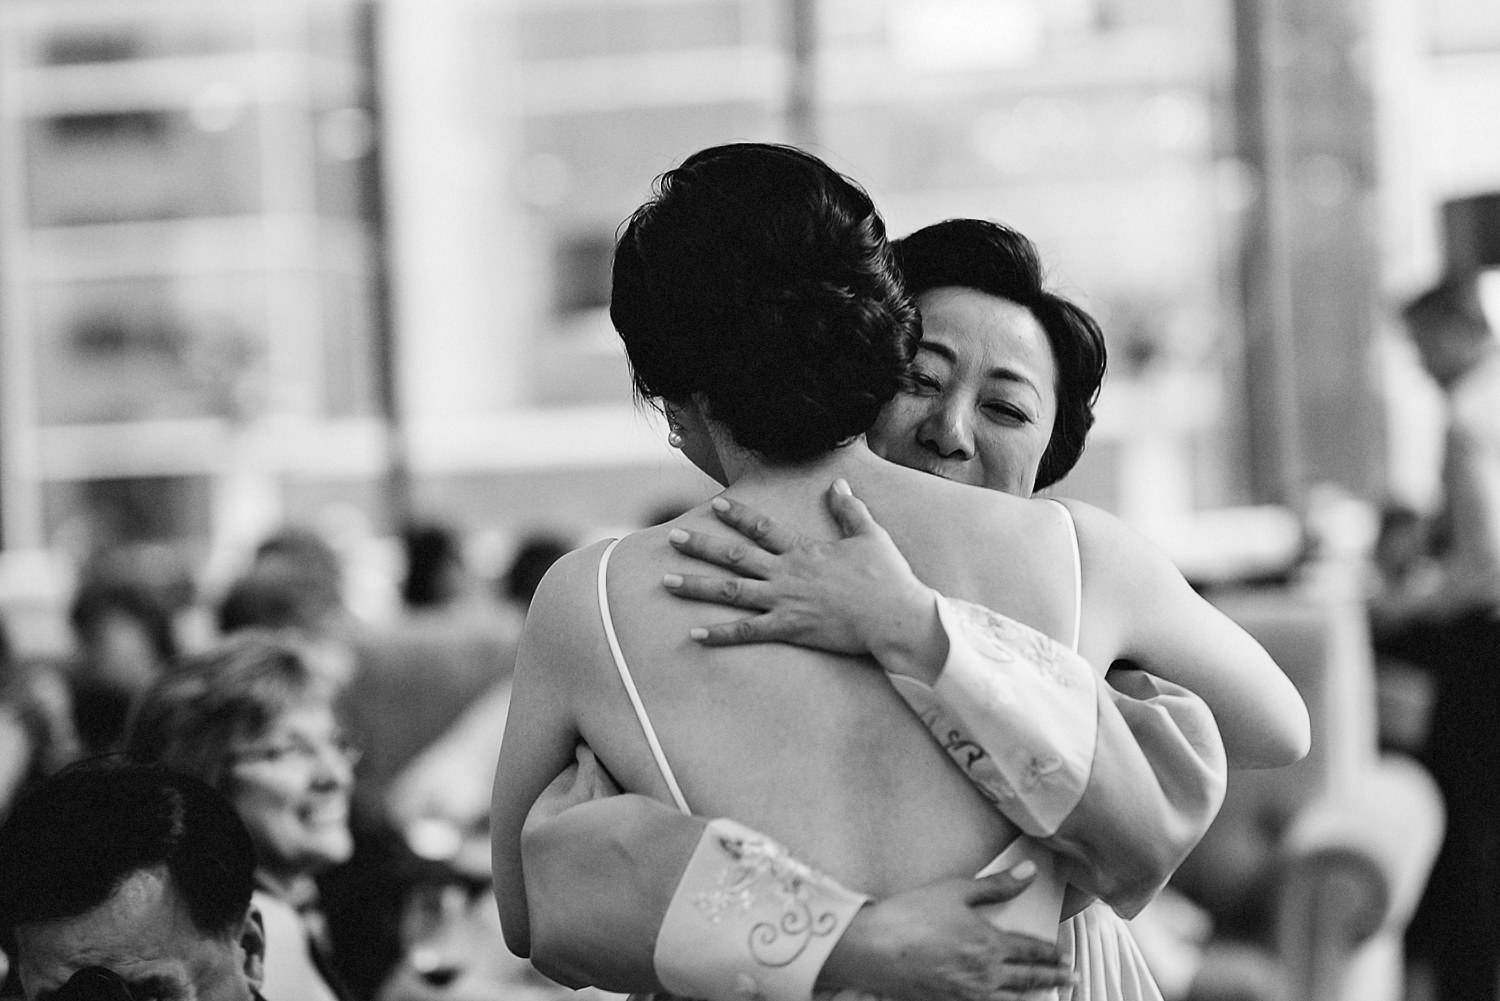 Best-Wedding-Photographers-Toronto_-Urban-City-Wedding-Photography-Downtown-Toronto-Photographer_Vintage-Bride-and-Groom-Details_The-Chase-Wedding-Venue_Candid-Photojournalistic-Documentary-Reception-Bride-Mother-Crying.jpg